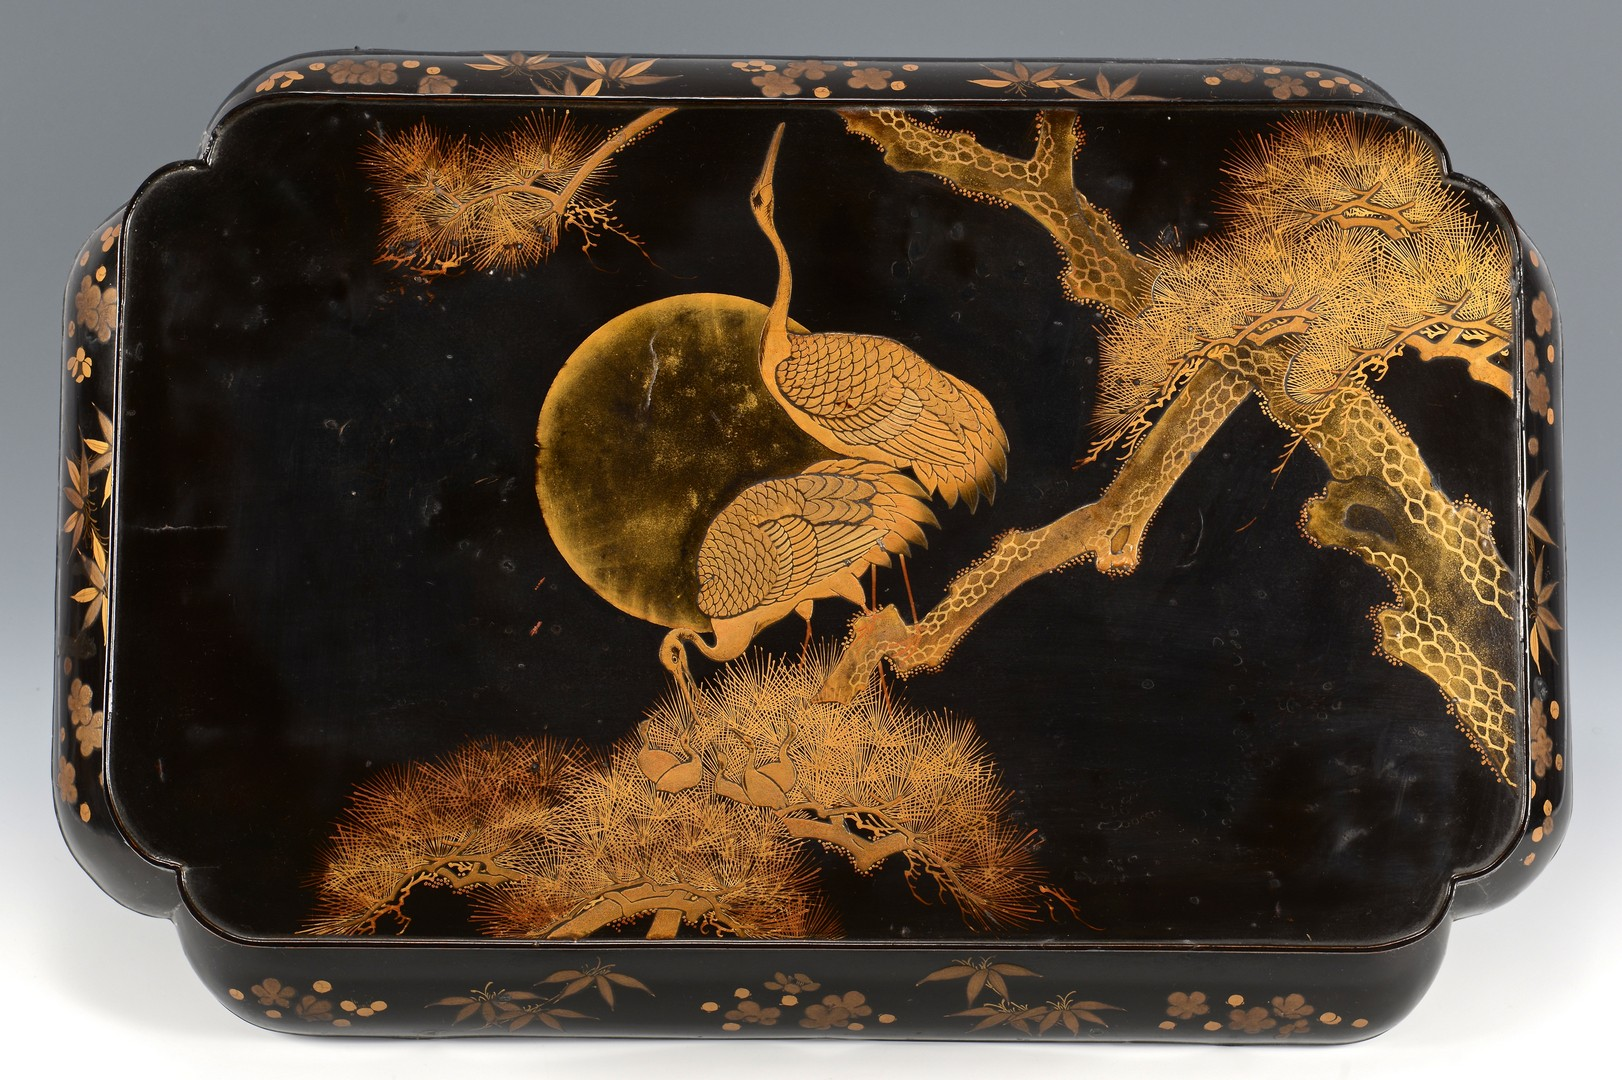 Lot 3832394: 3 Japanese Lacquer Items